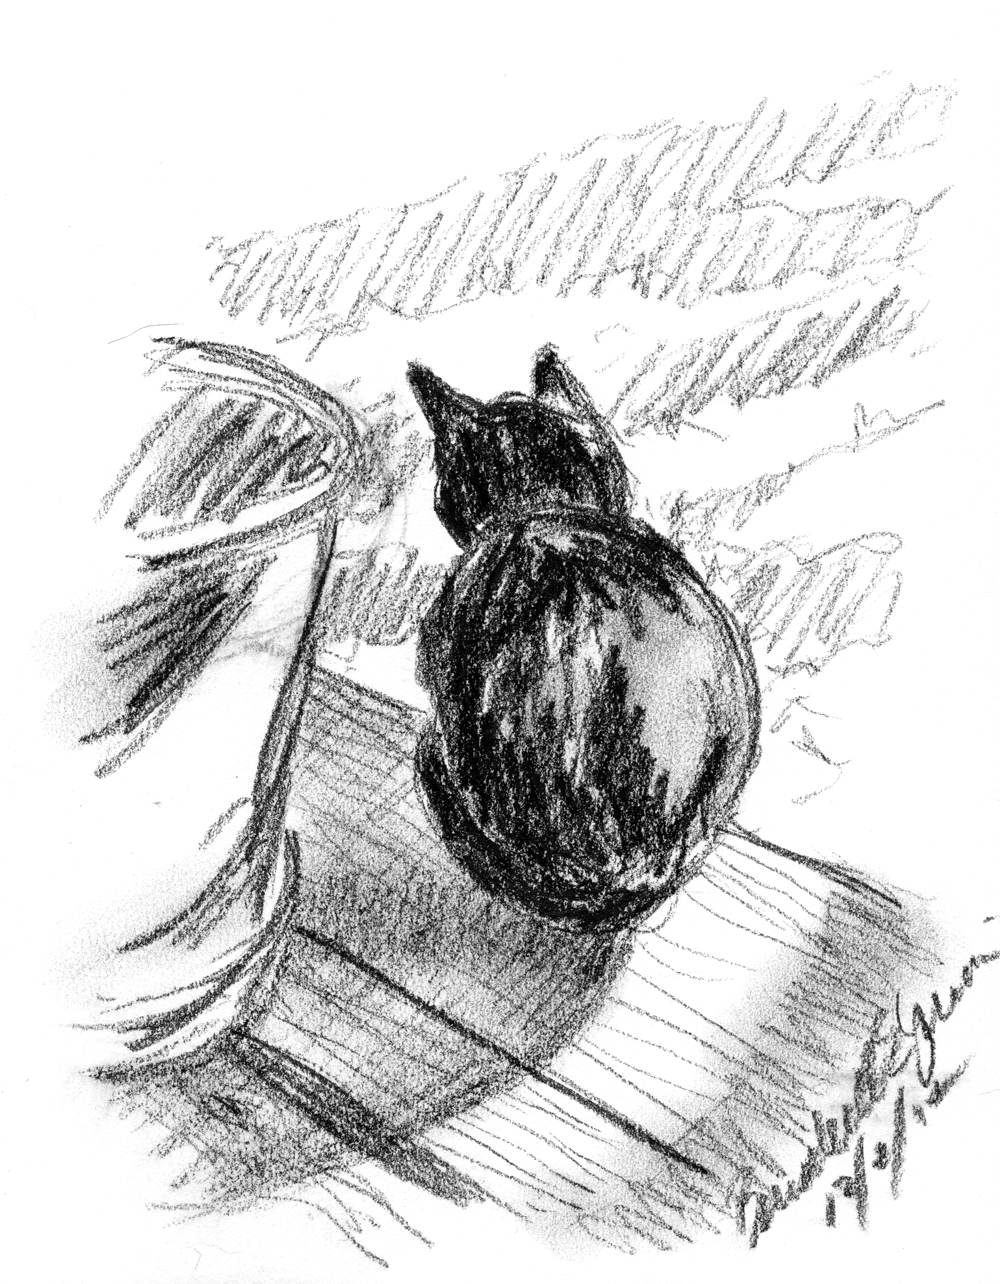 charcoal sketch of black cat on step